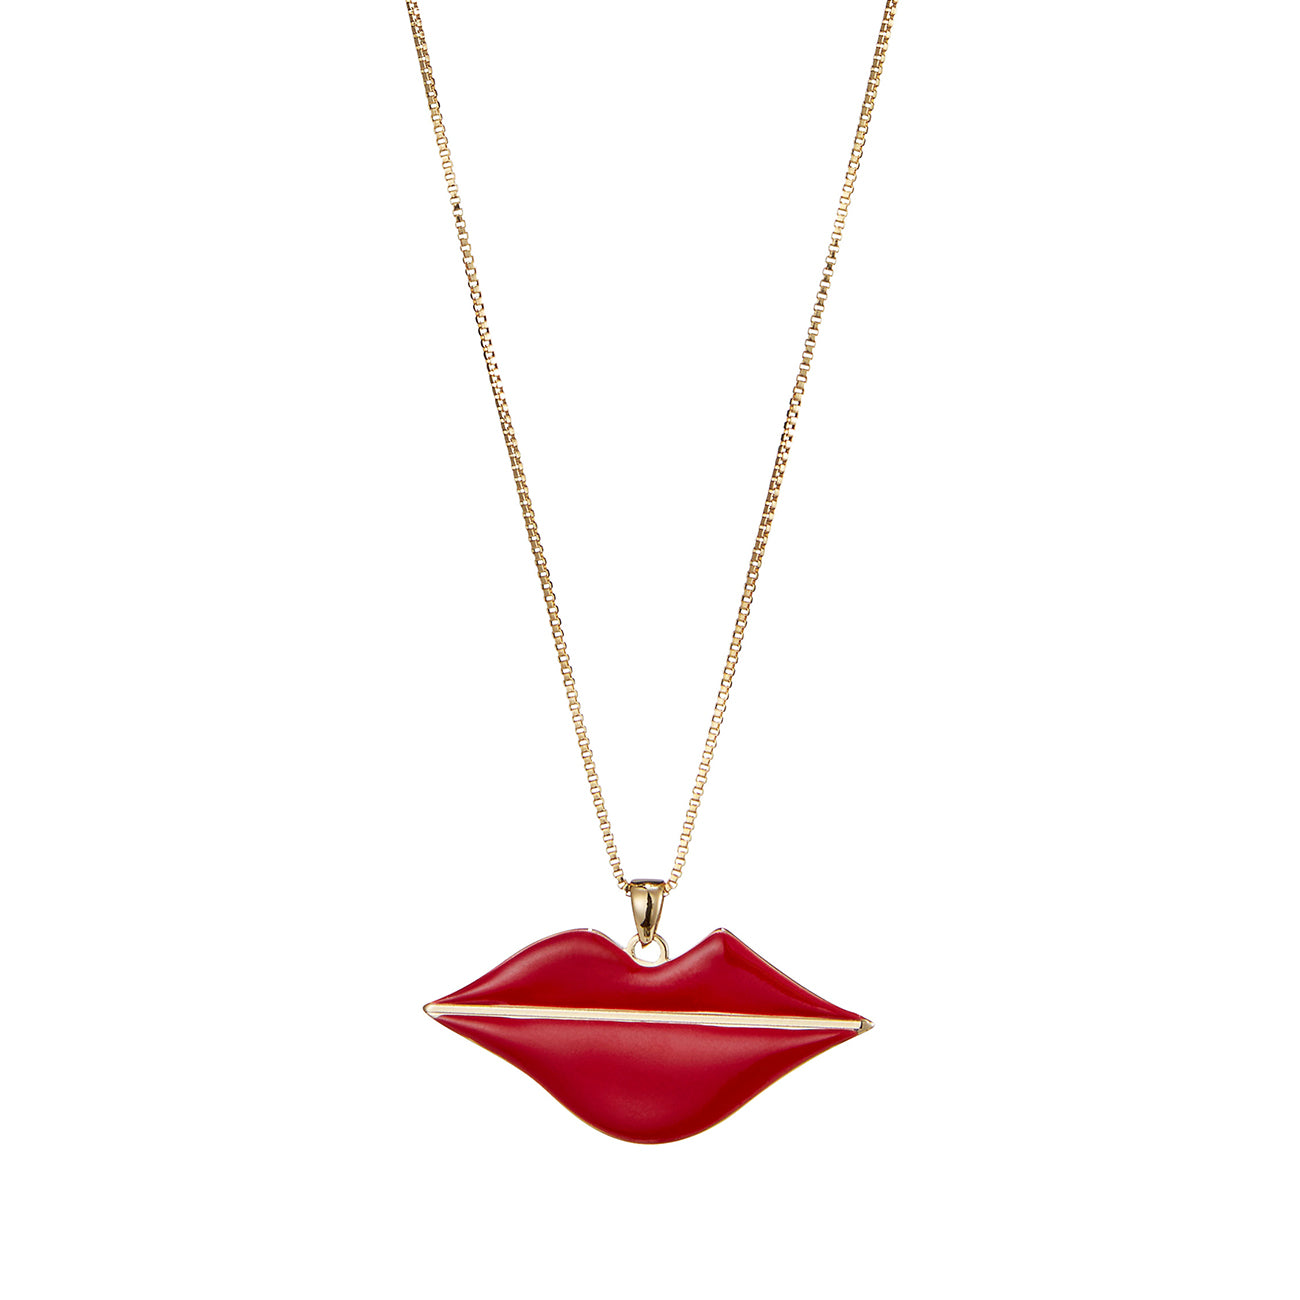 The La Bouche Pendant by Jenny Bird in High Polish Gold with Red Enamel